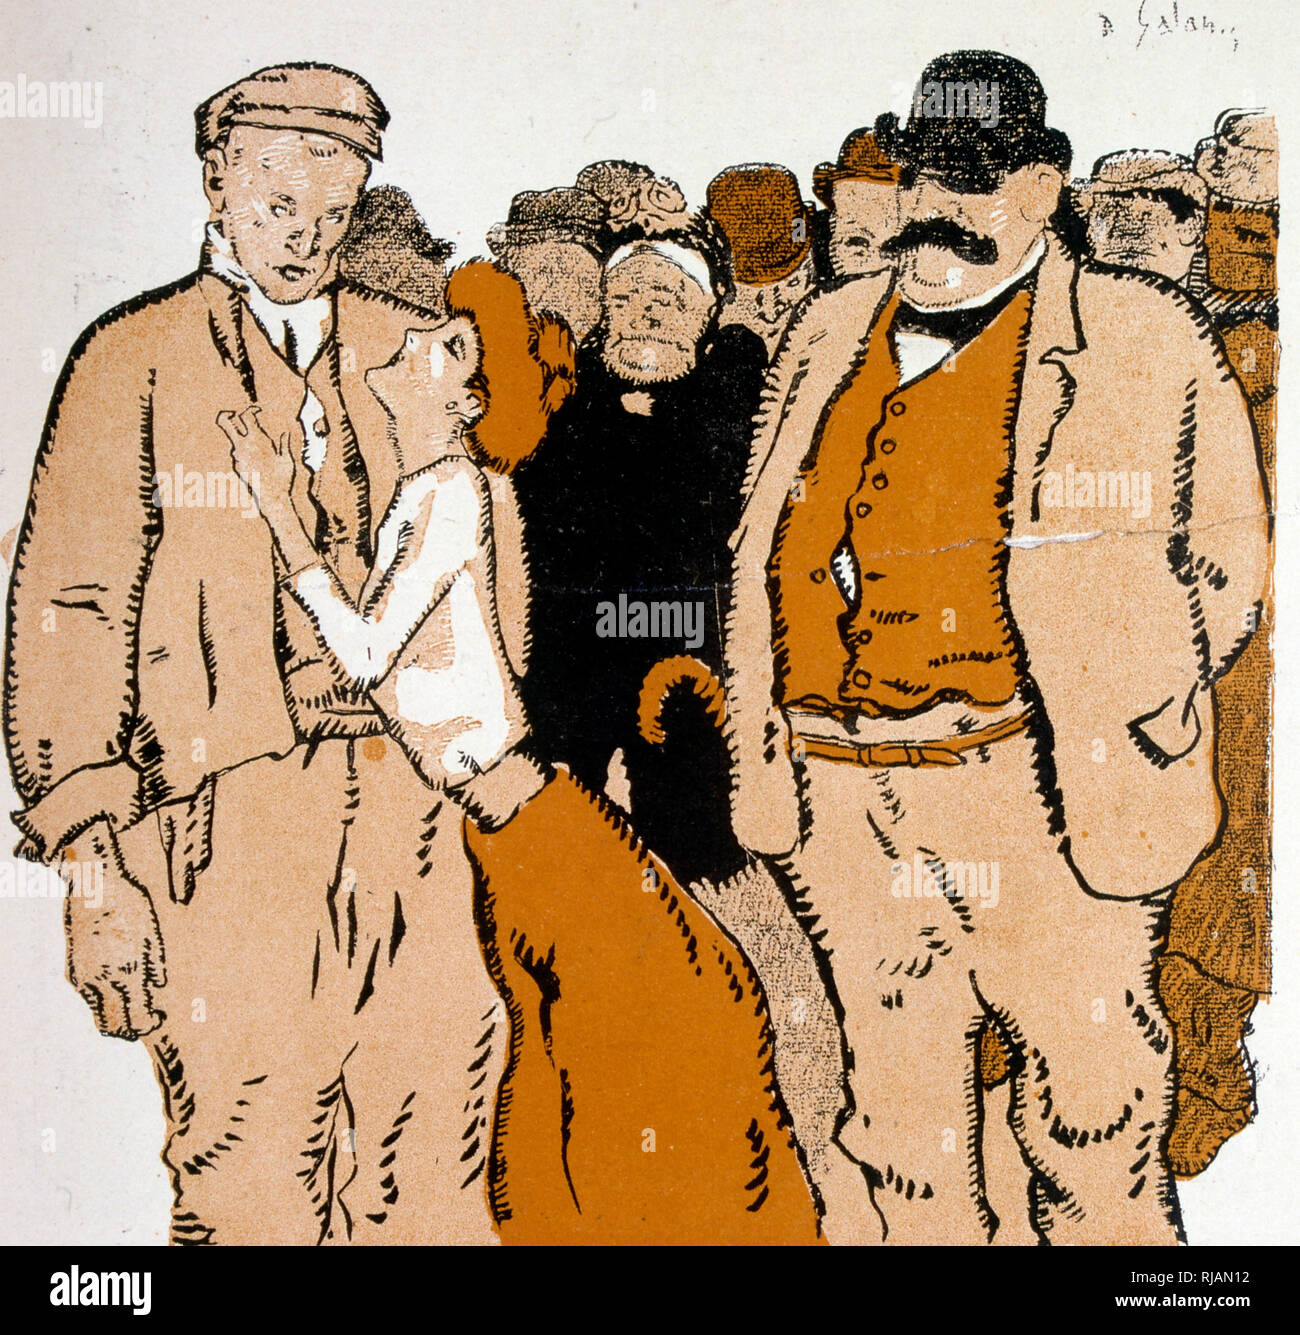 French caricature showing a woman clutching at the jacket of a man as a crowd looks on 1906 - Stock Image